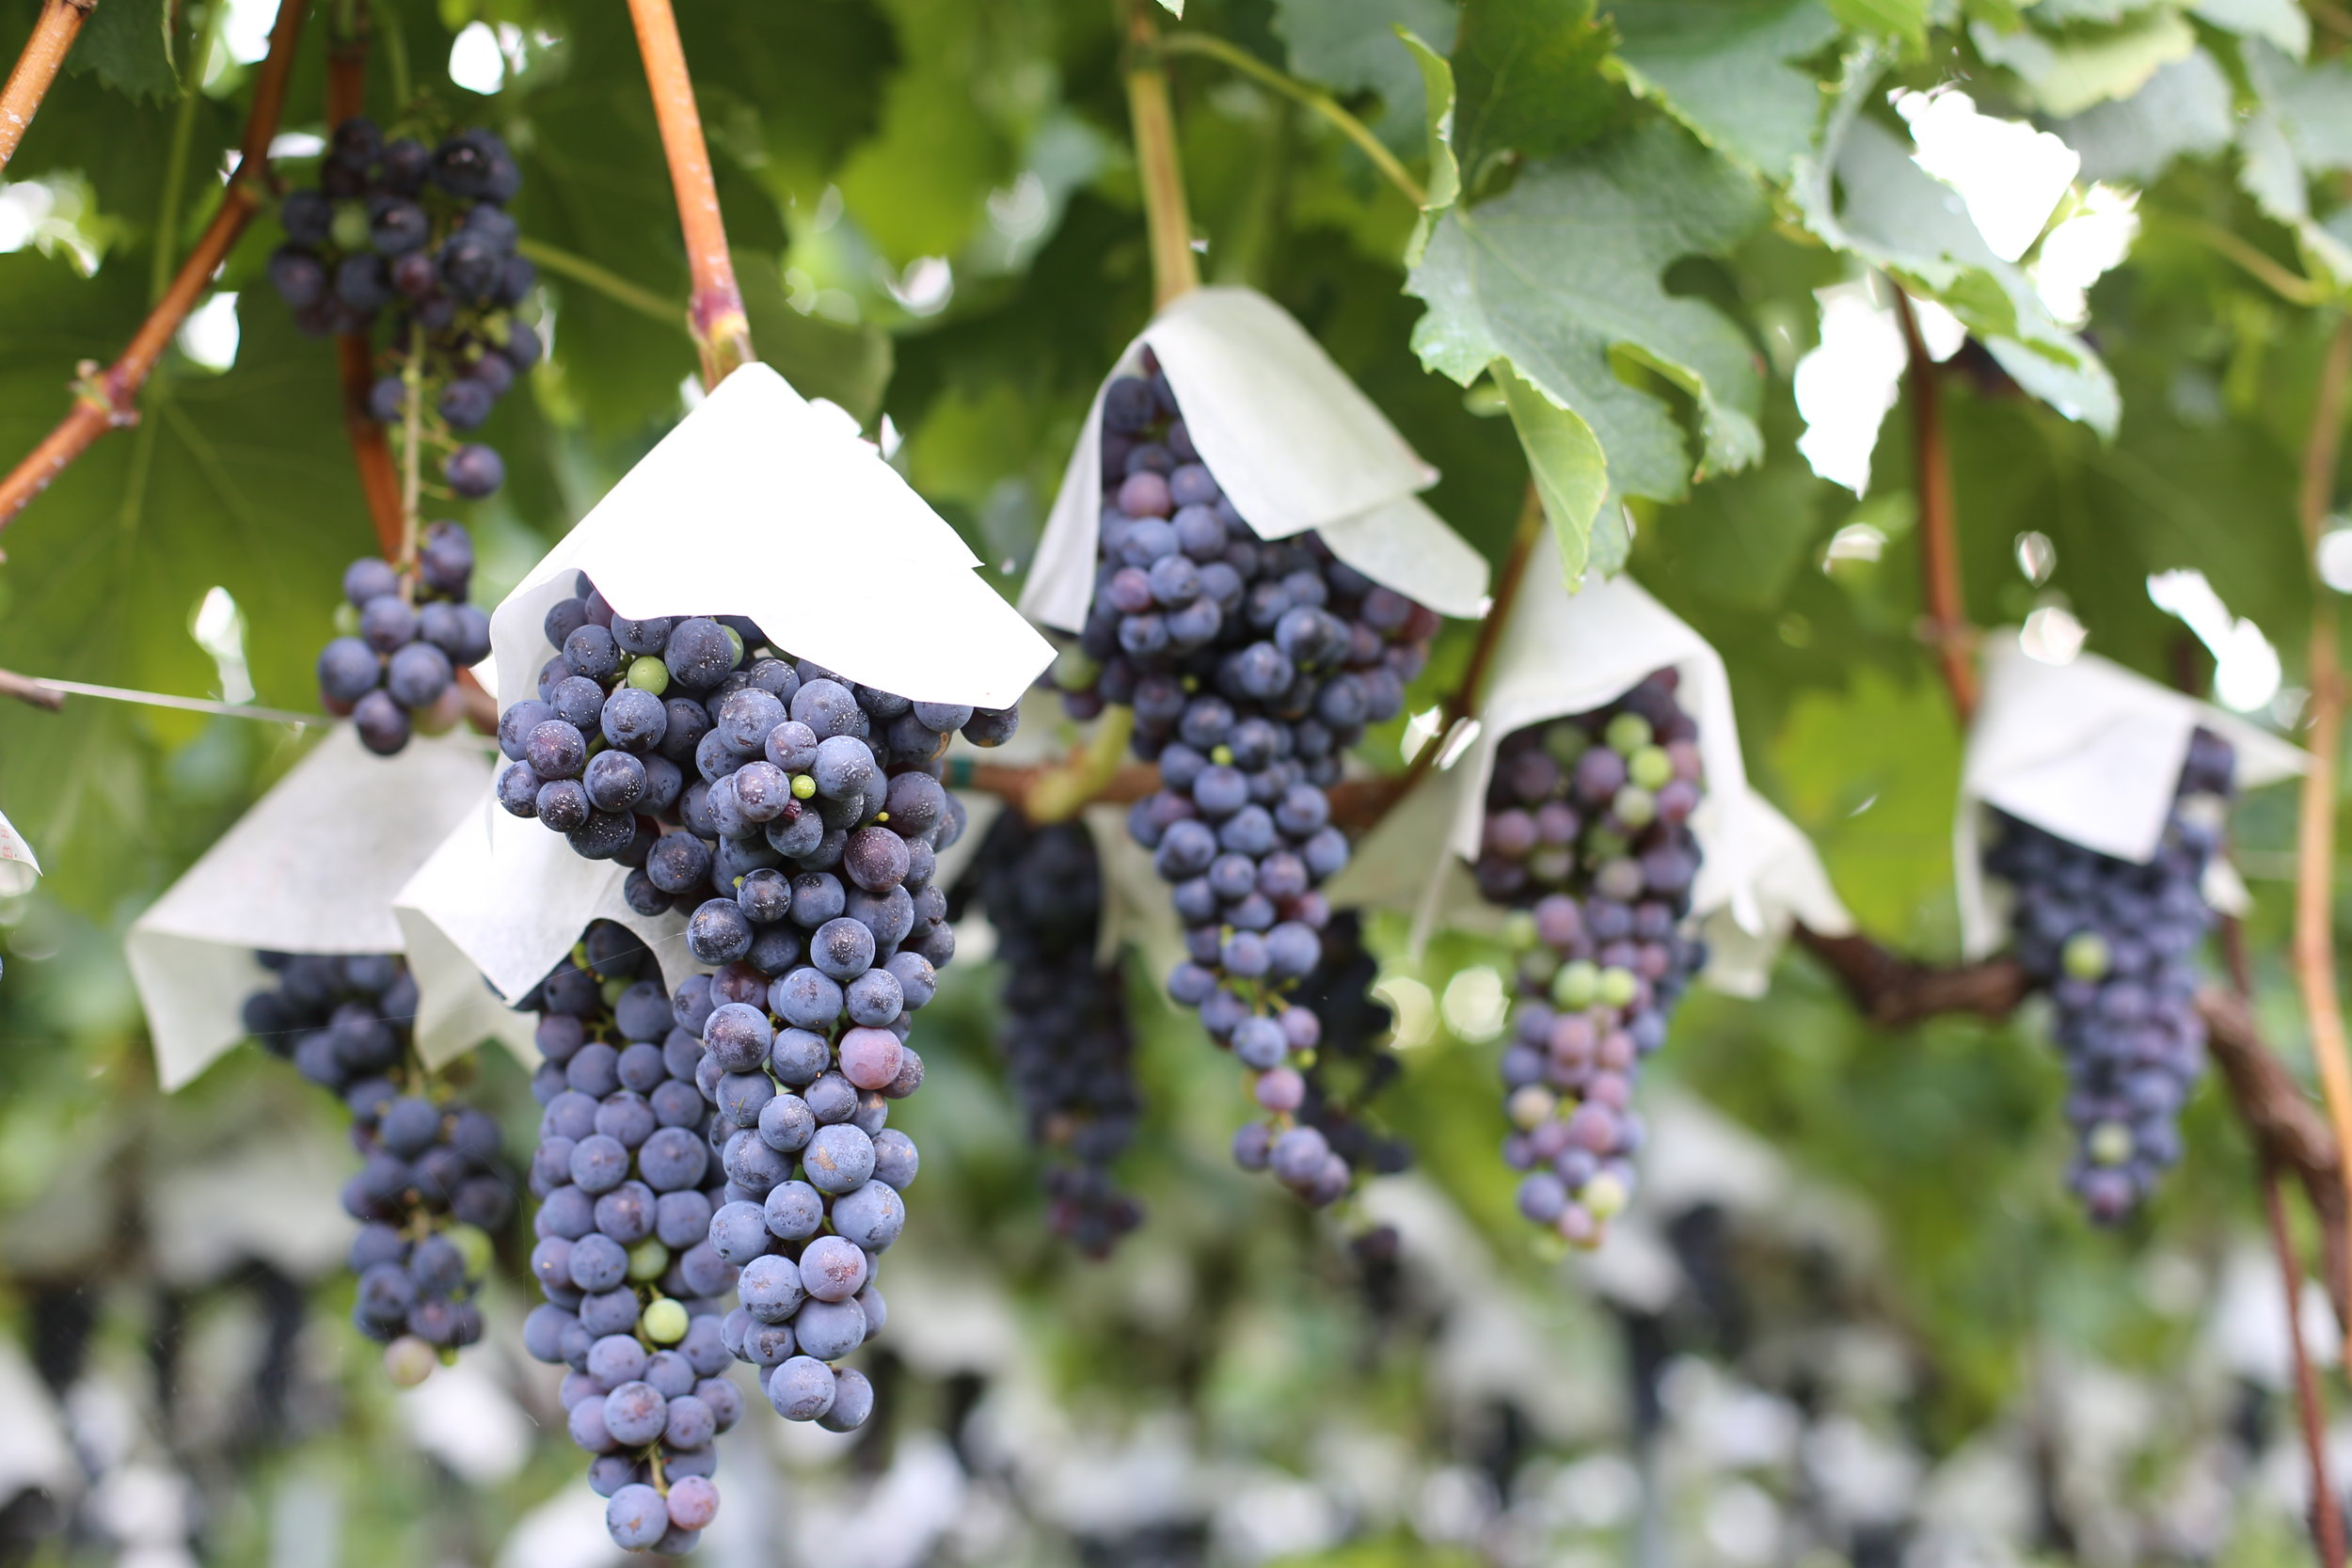 Even international grapes grown with European-style vertical trellising wear hats in the Koshu Valley.